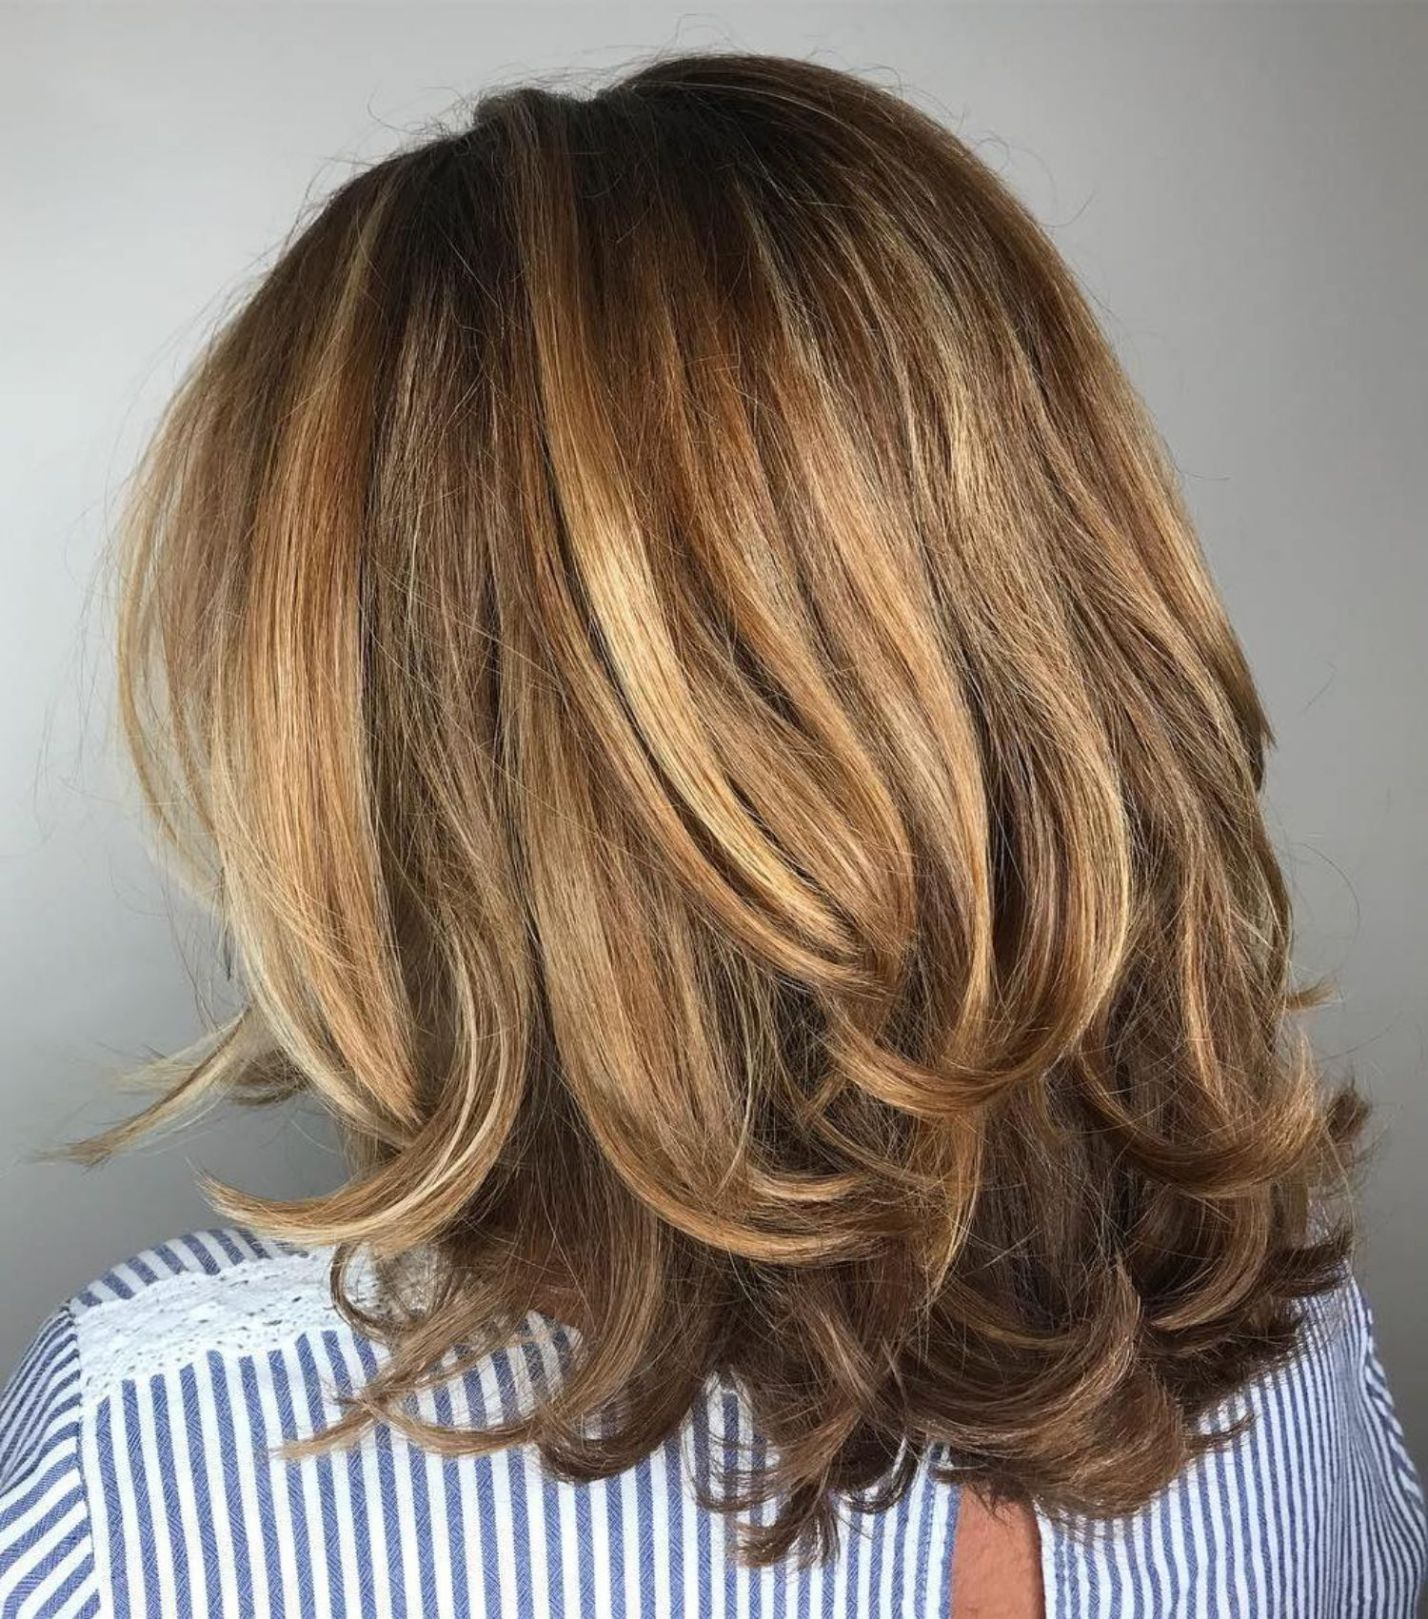 50 Modern Haircuts For Women Over 50 With Extra Zing Medium Hair Styles Hair Styles Modern Haircuts